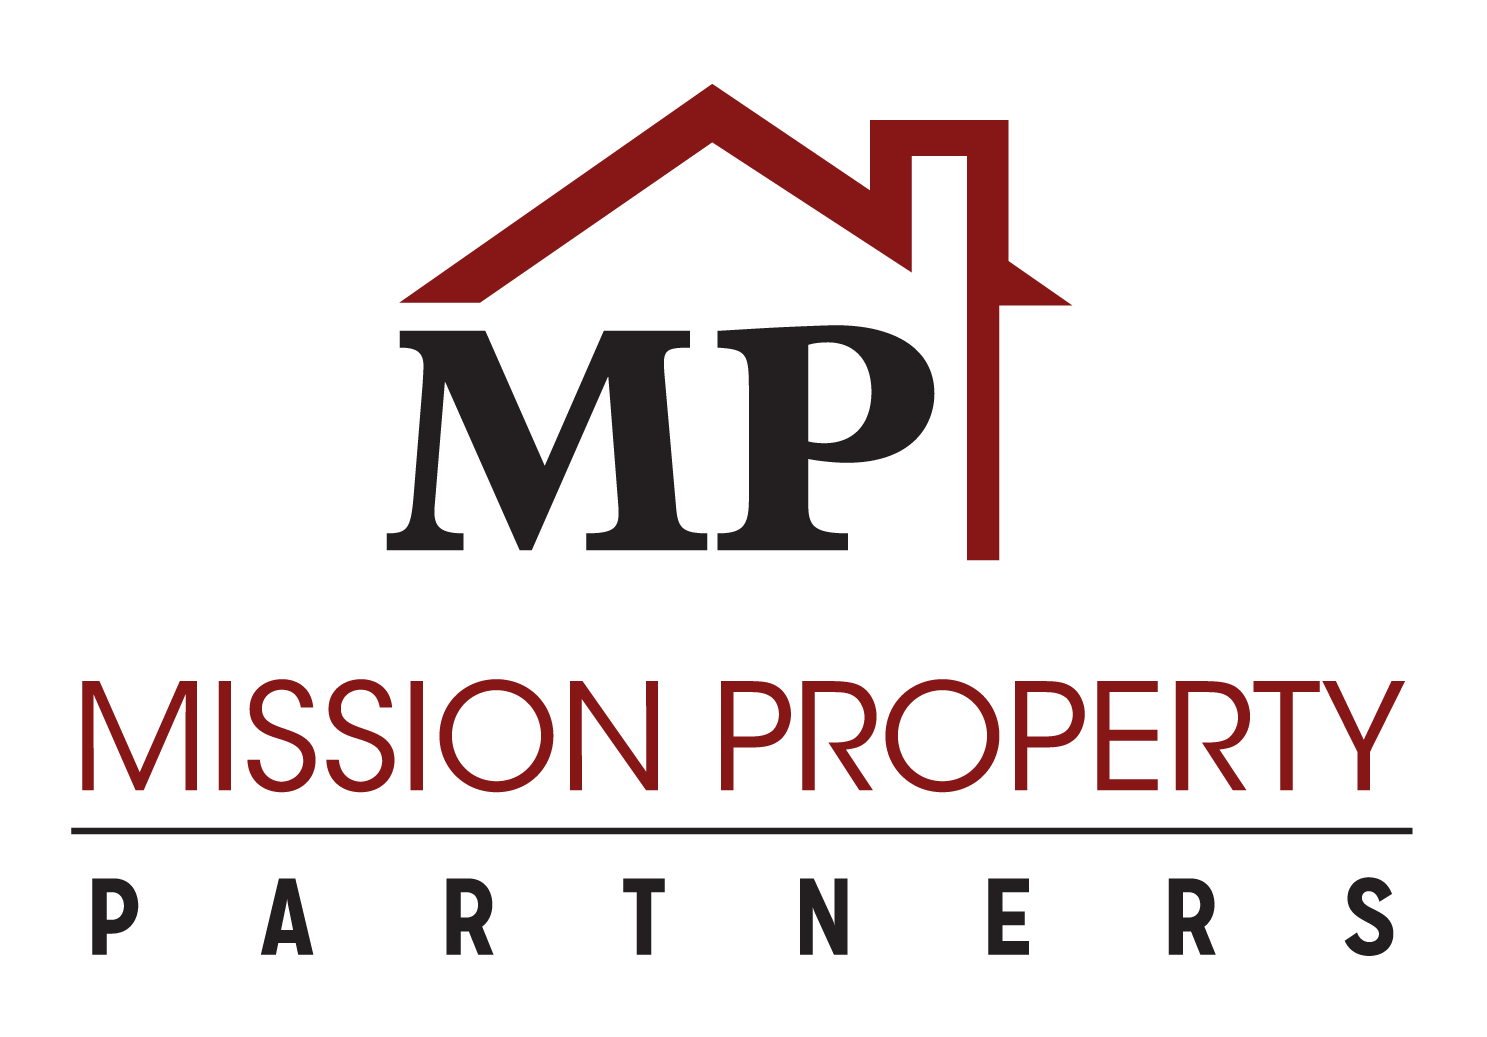 Mission Property Partners